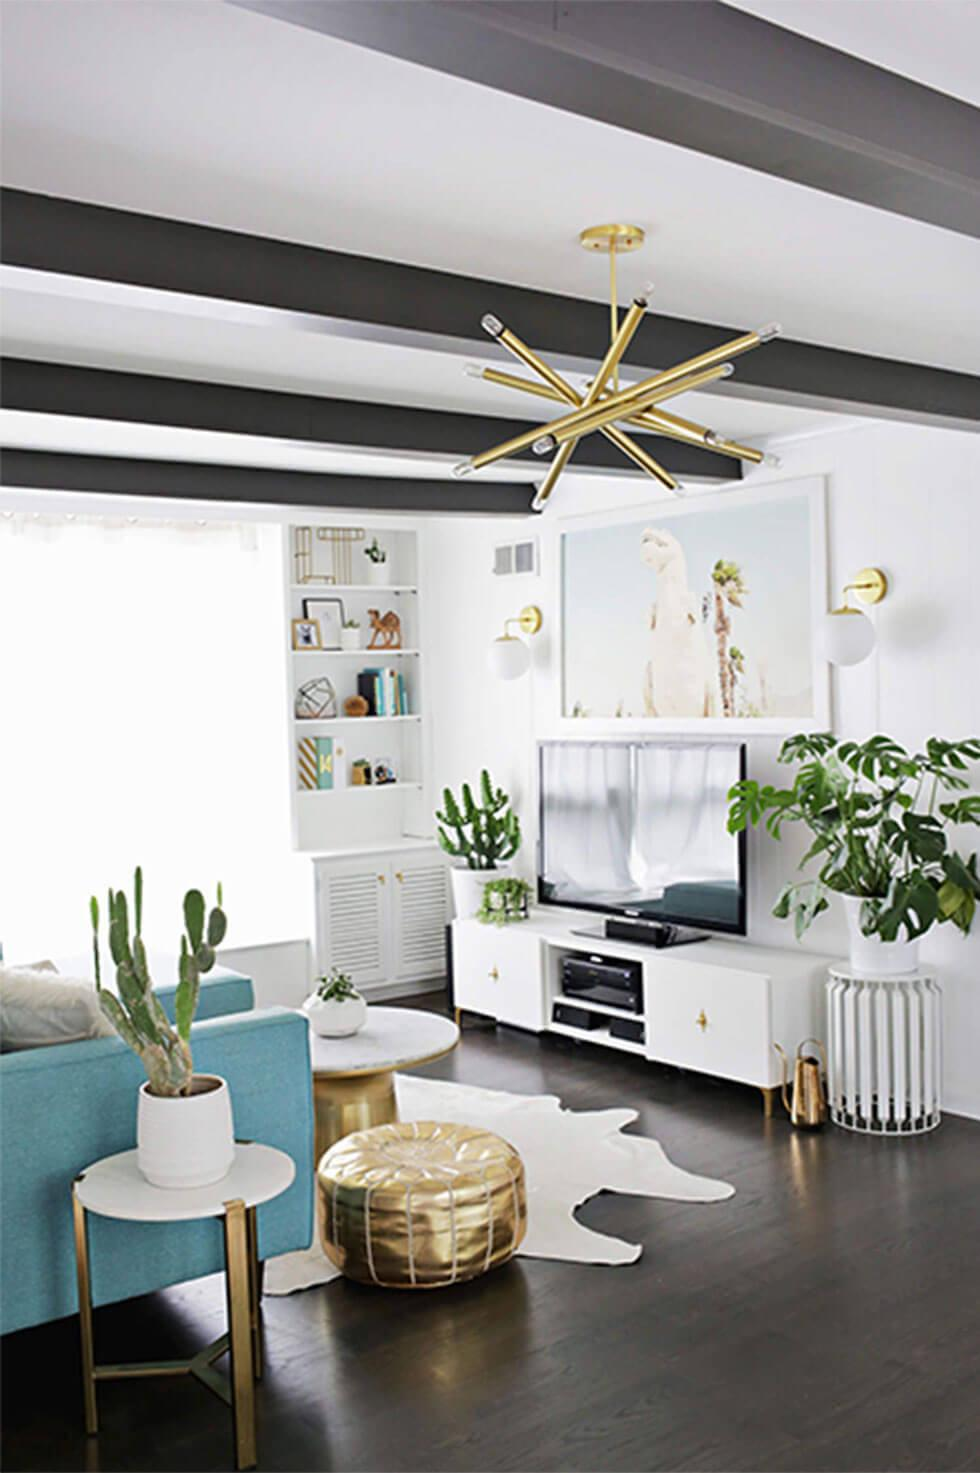 Contemporary living room with cactus plants, gold light fixture, and gold ottoman.